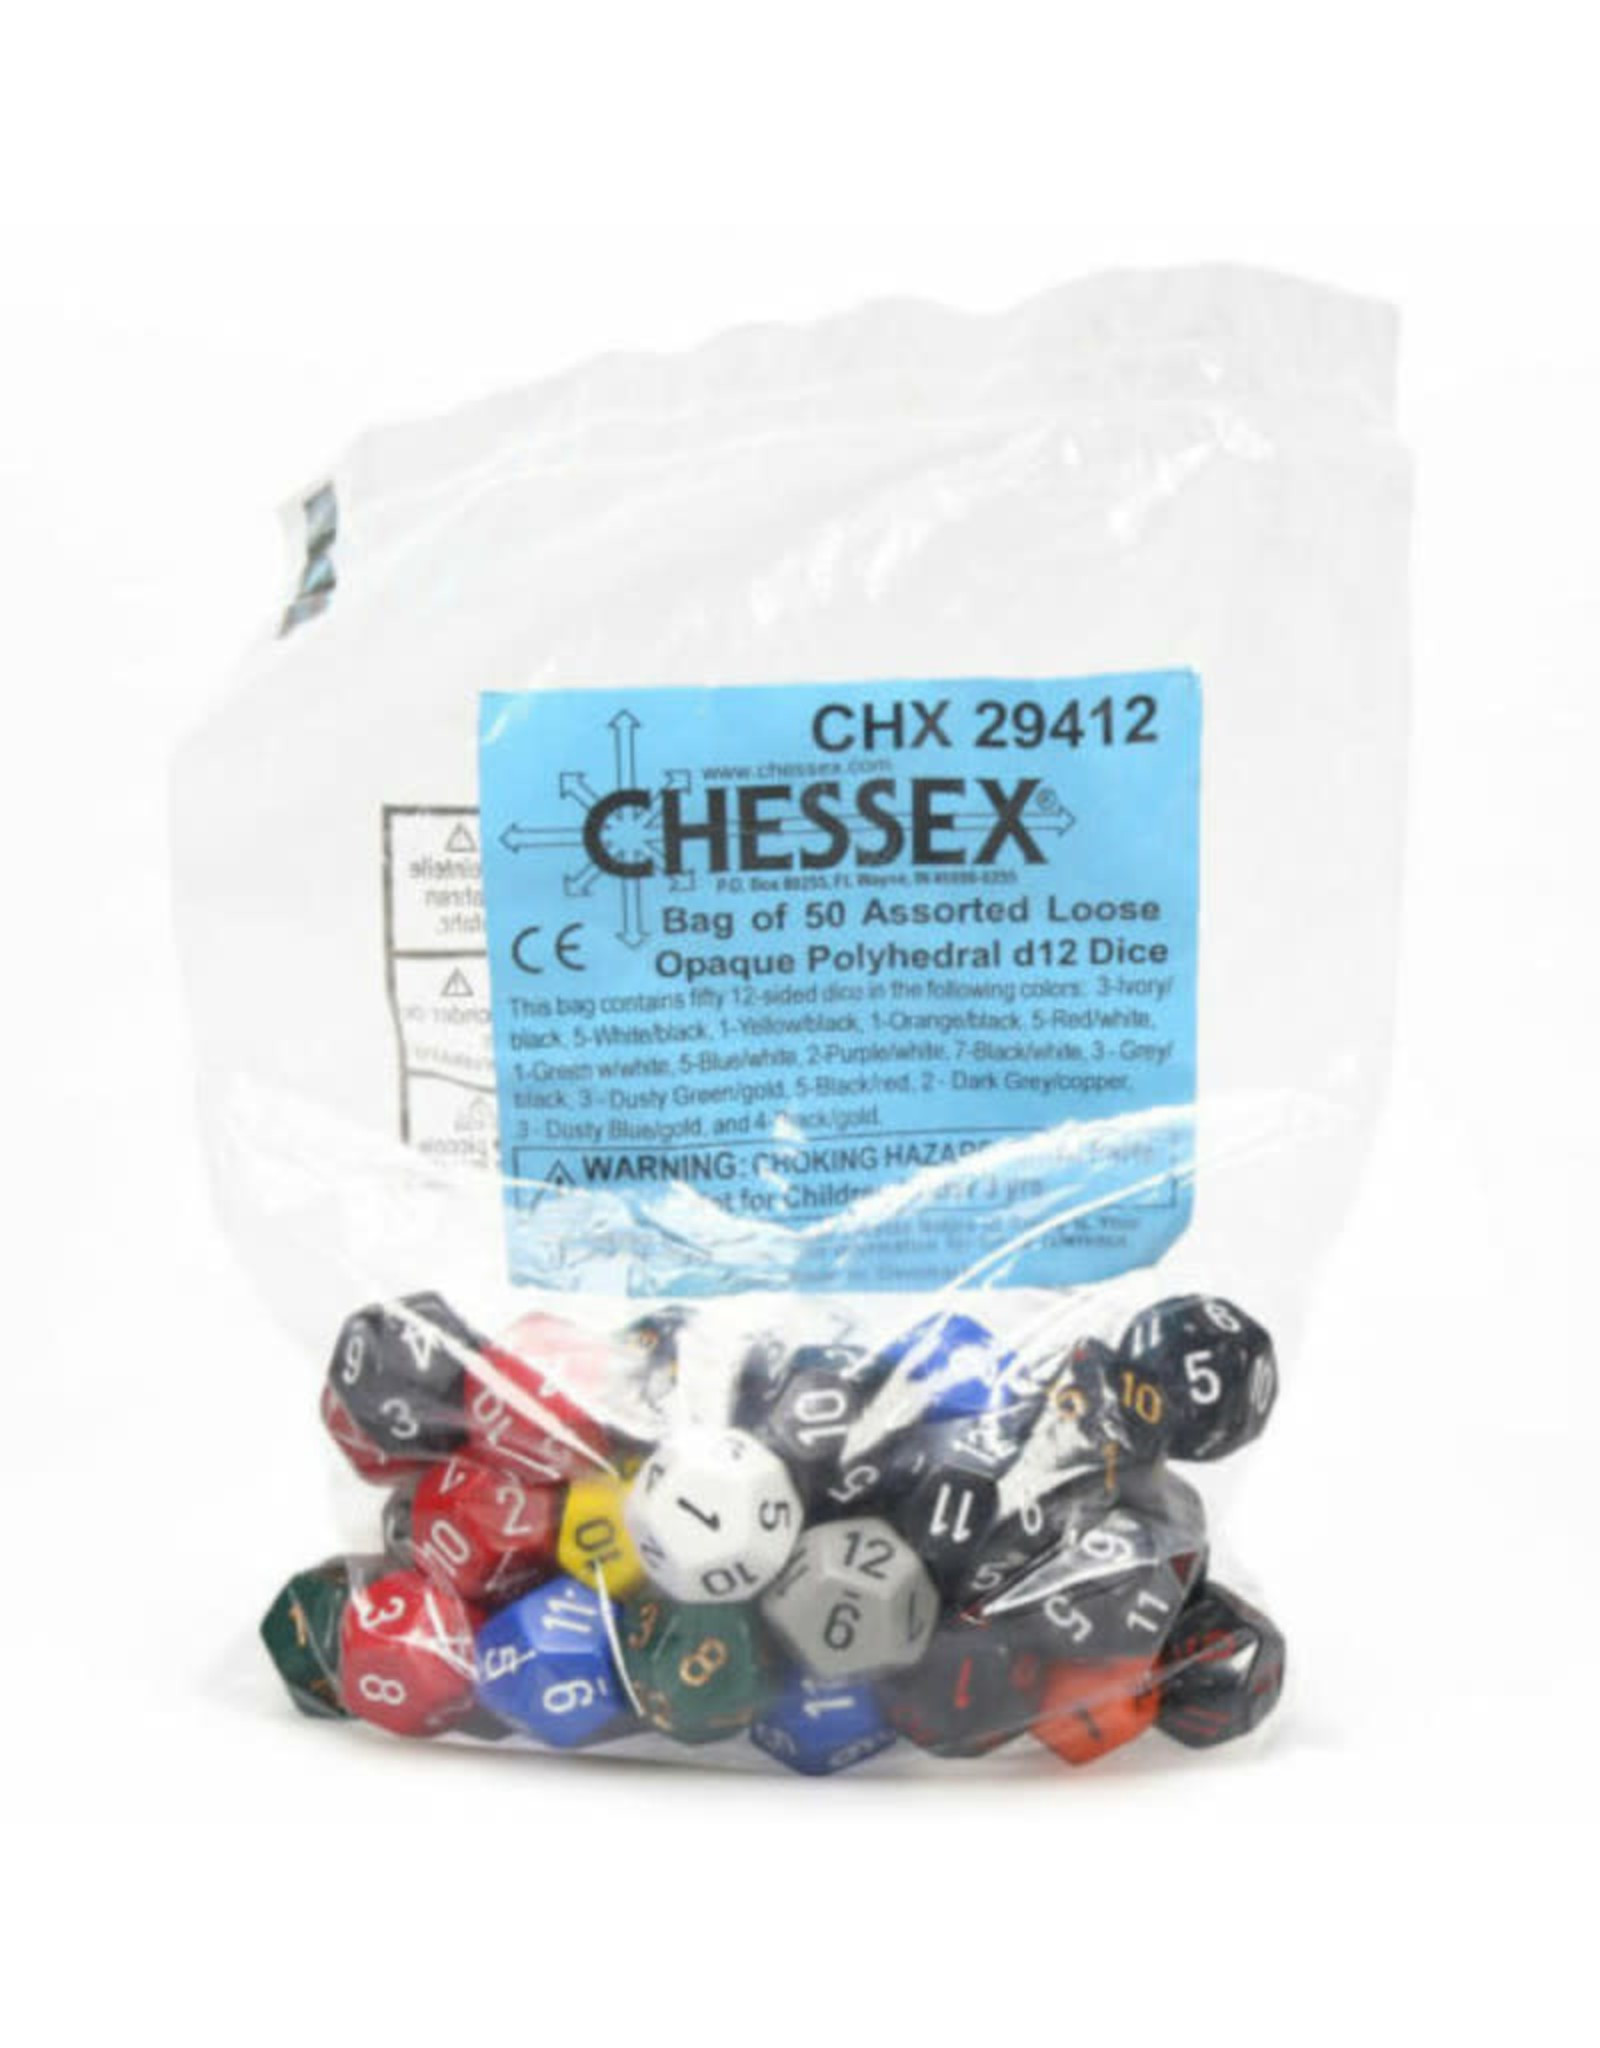 Chessex Assorted D12 Dice: Bag of Opaque Dice (50)